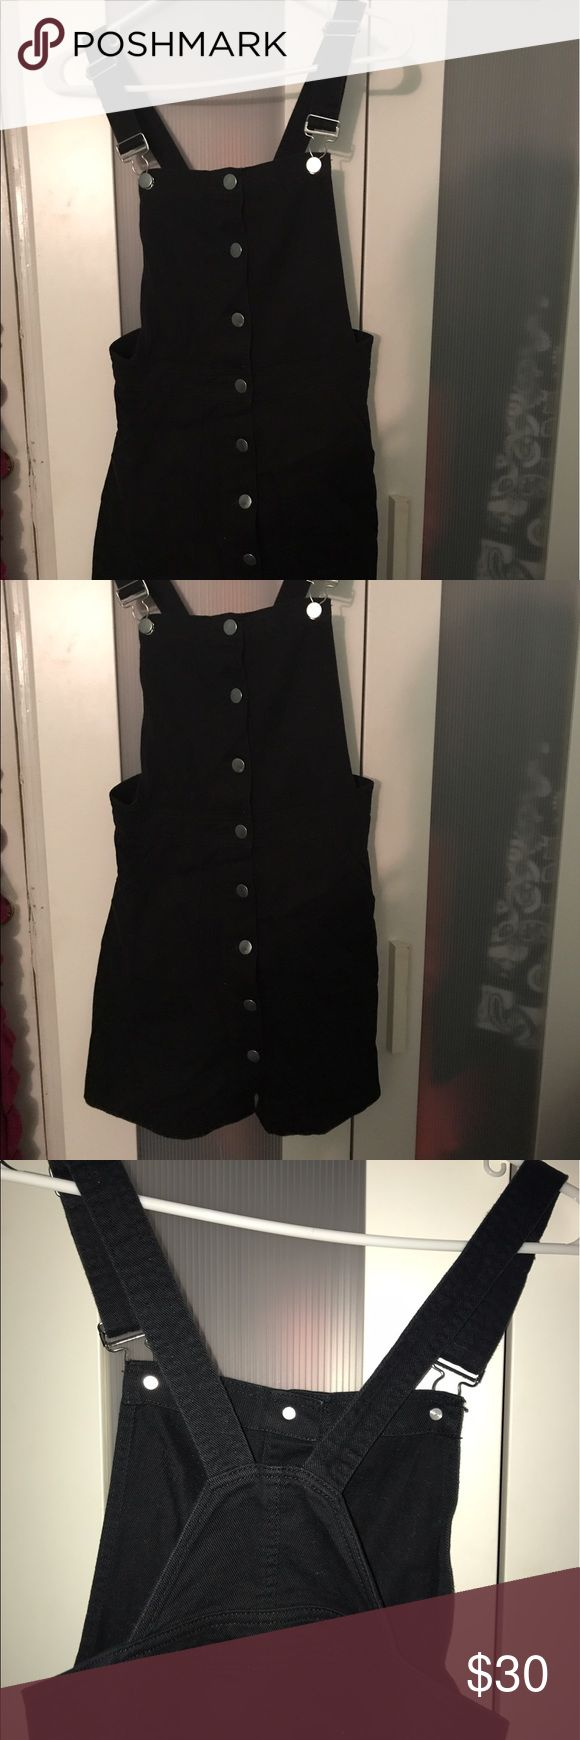 Black Overall Jumper Dress Adorable black overall dress with silver buttons and hooks! H&M Other